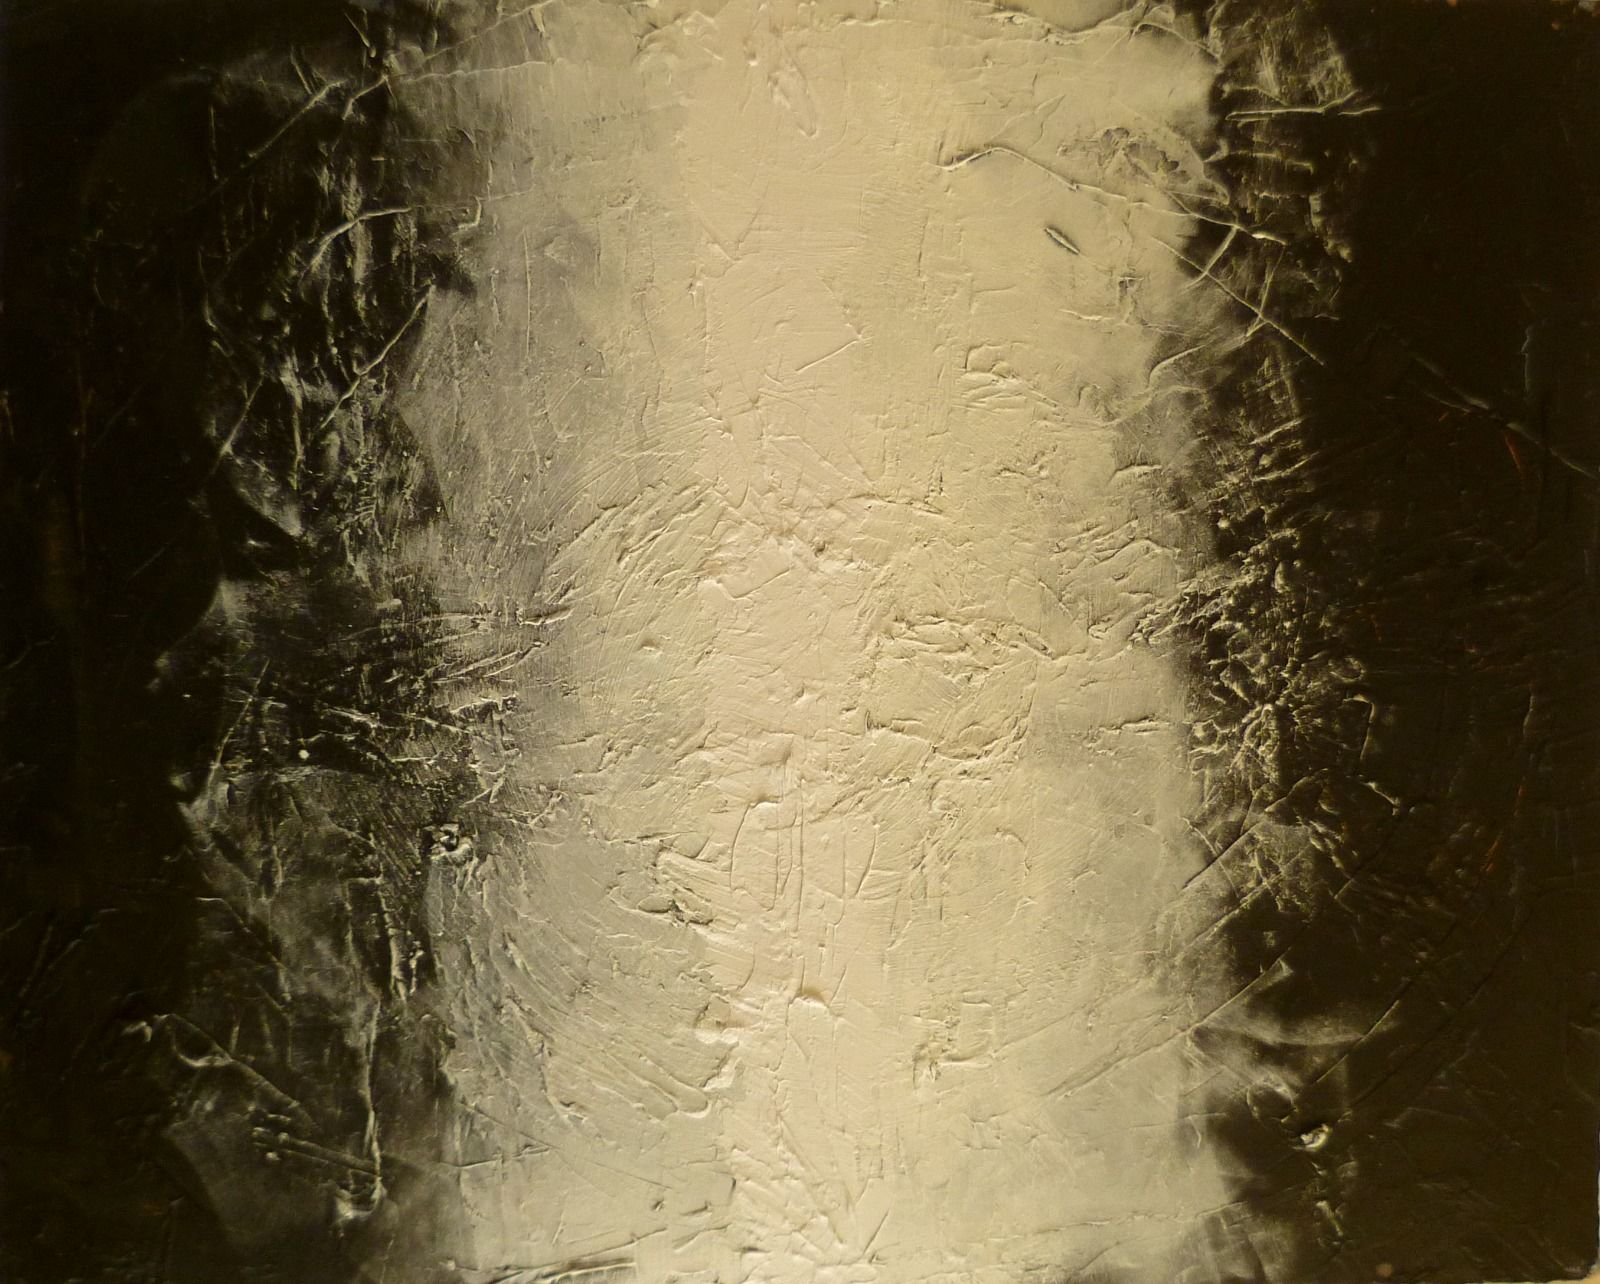 Covergence  1  65v80x1.8cm  (oil and wax on canvas)